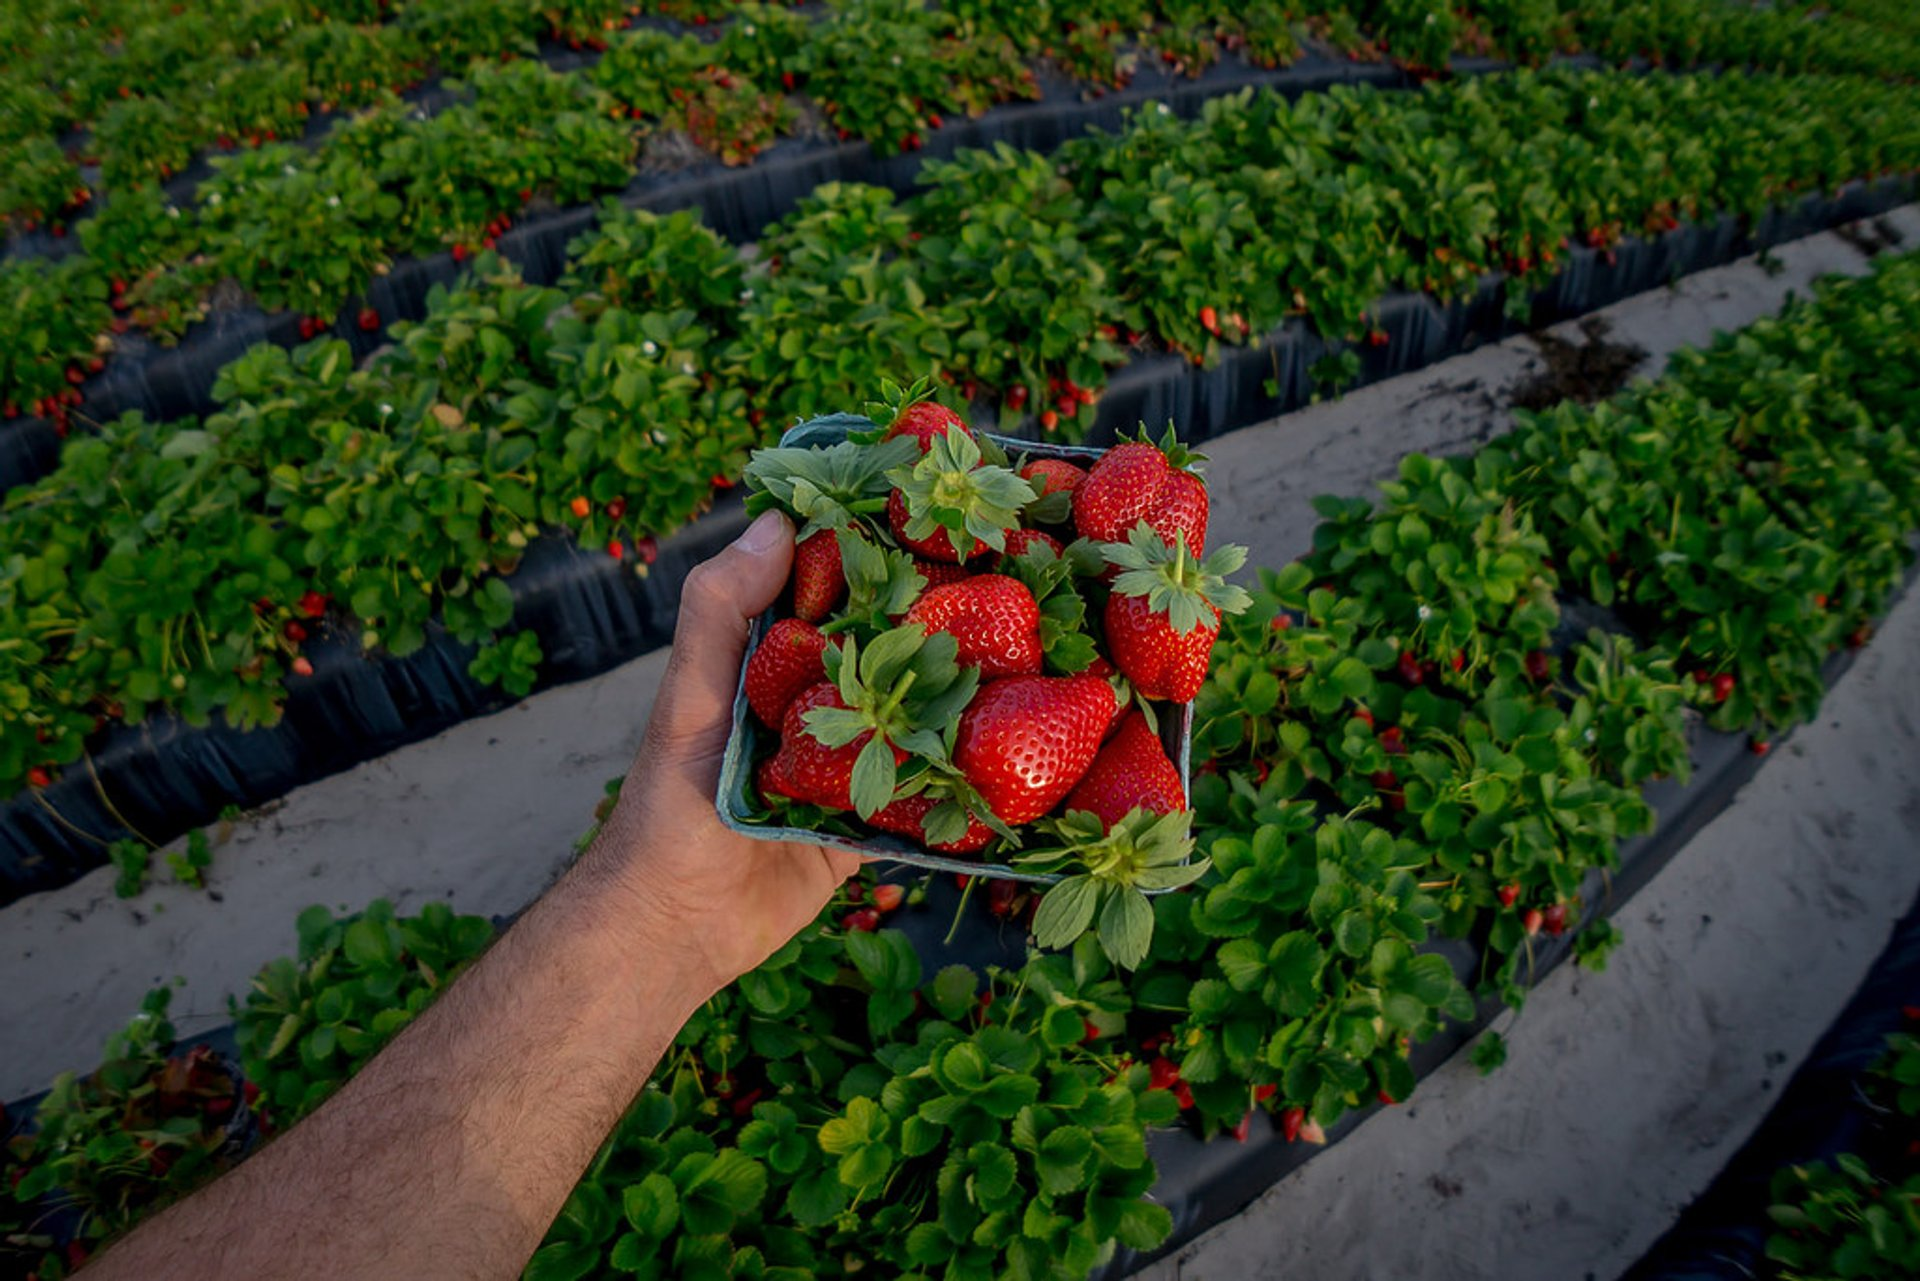 Florida Strawberry Festival in Florida 2020 - Best Time